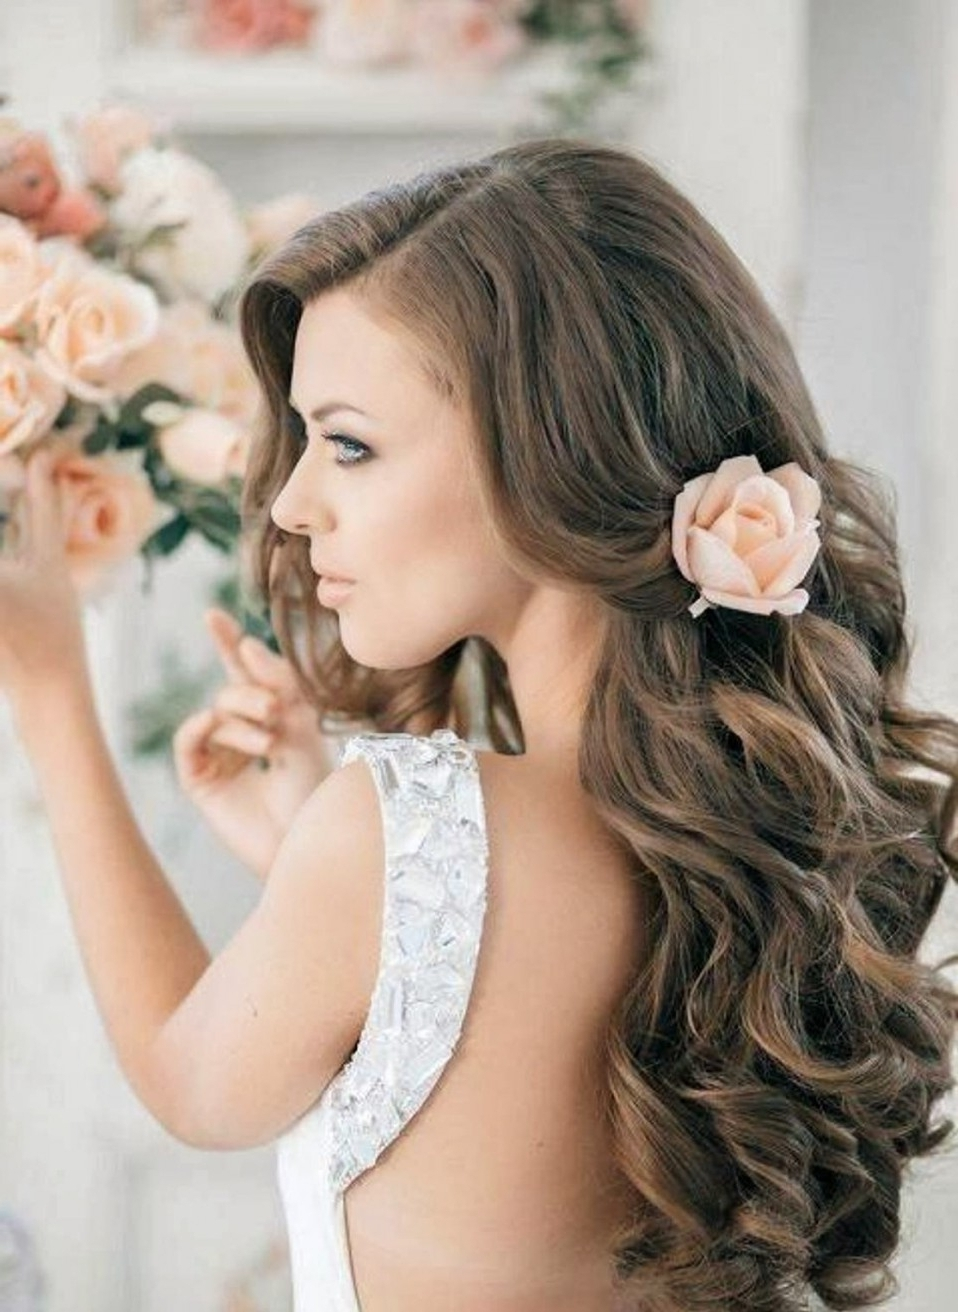 Wedding Long Hairstyle Wedding Hairstyles For Long Hair Fave Inside Curly Long Updos For Wedding (View 10 of 15)